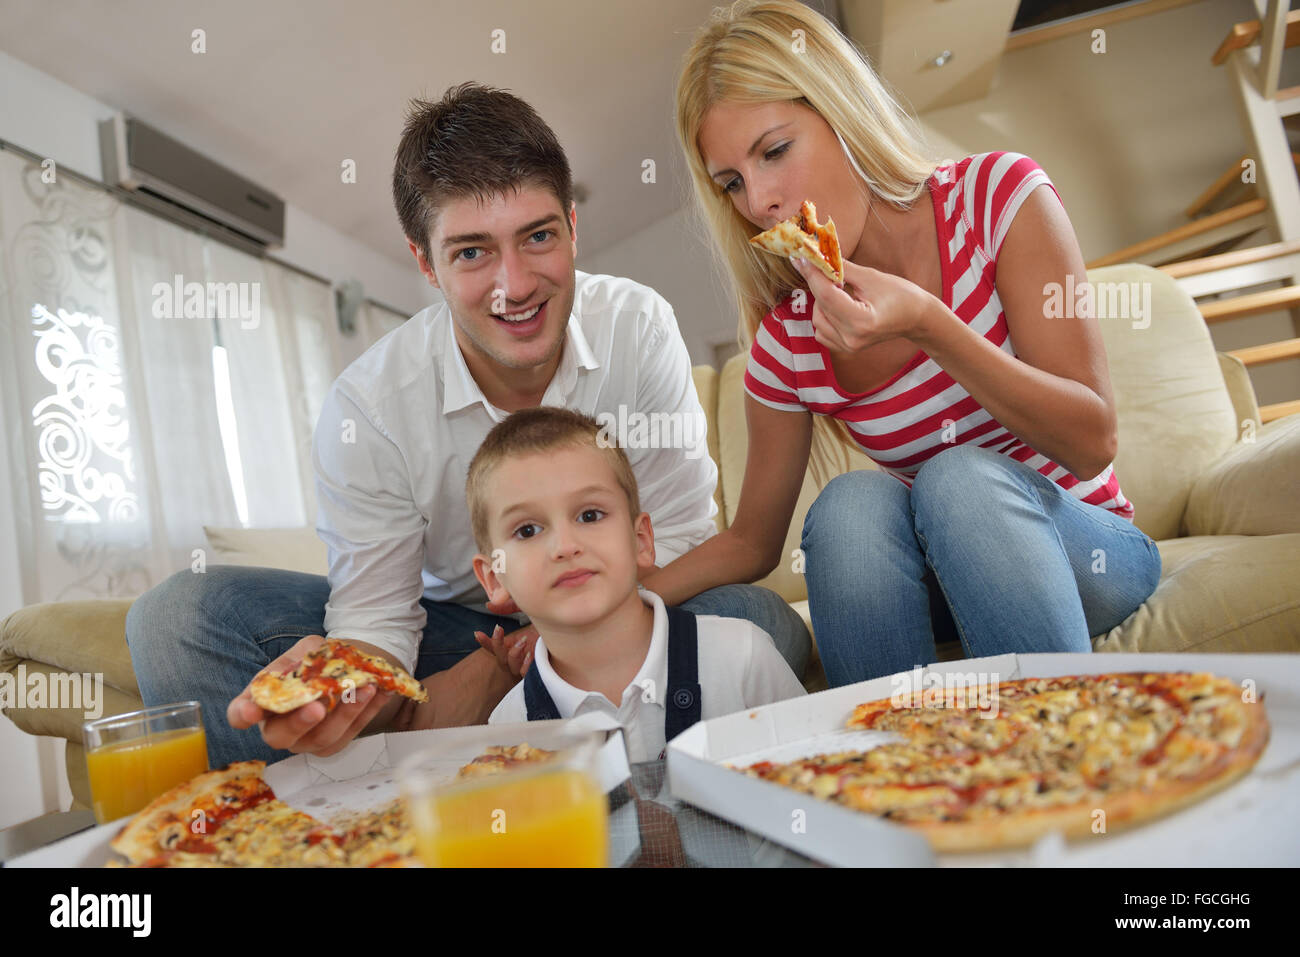 family eating pizza Stock Photo, Royalty Free Image ...